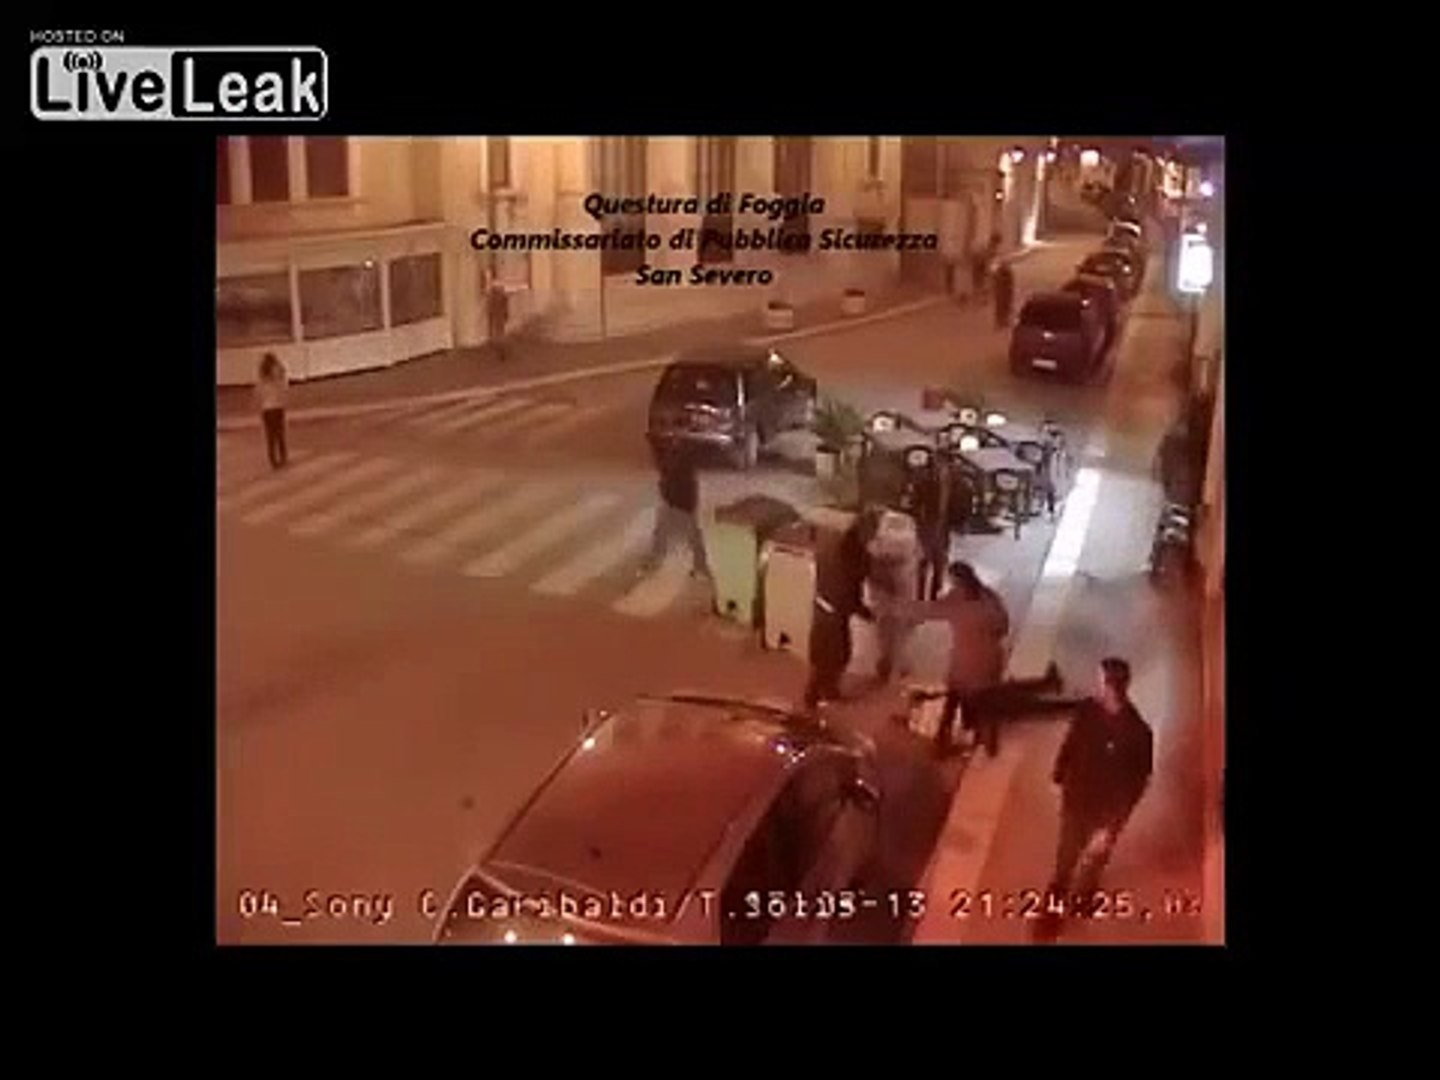 LiveLeak - Moroccan man gets brutally beaten outside a bar